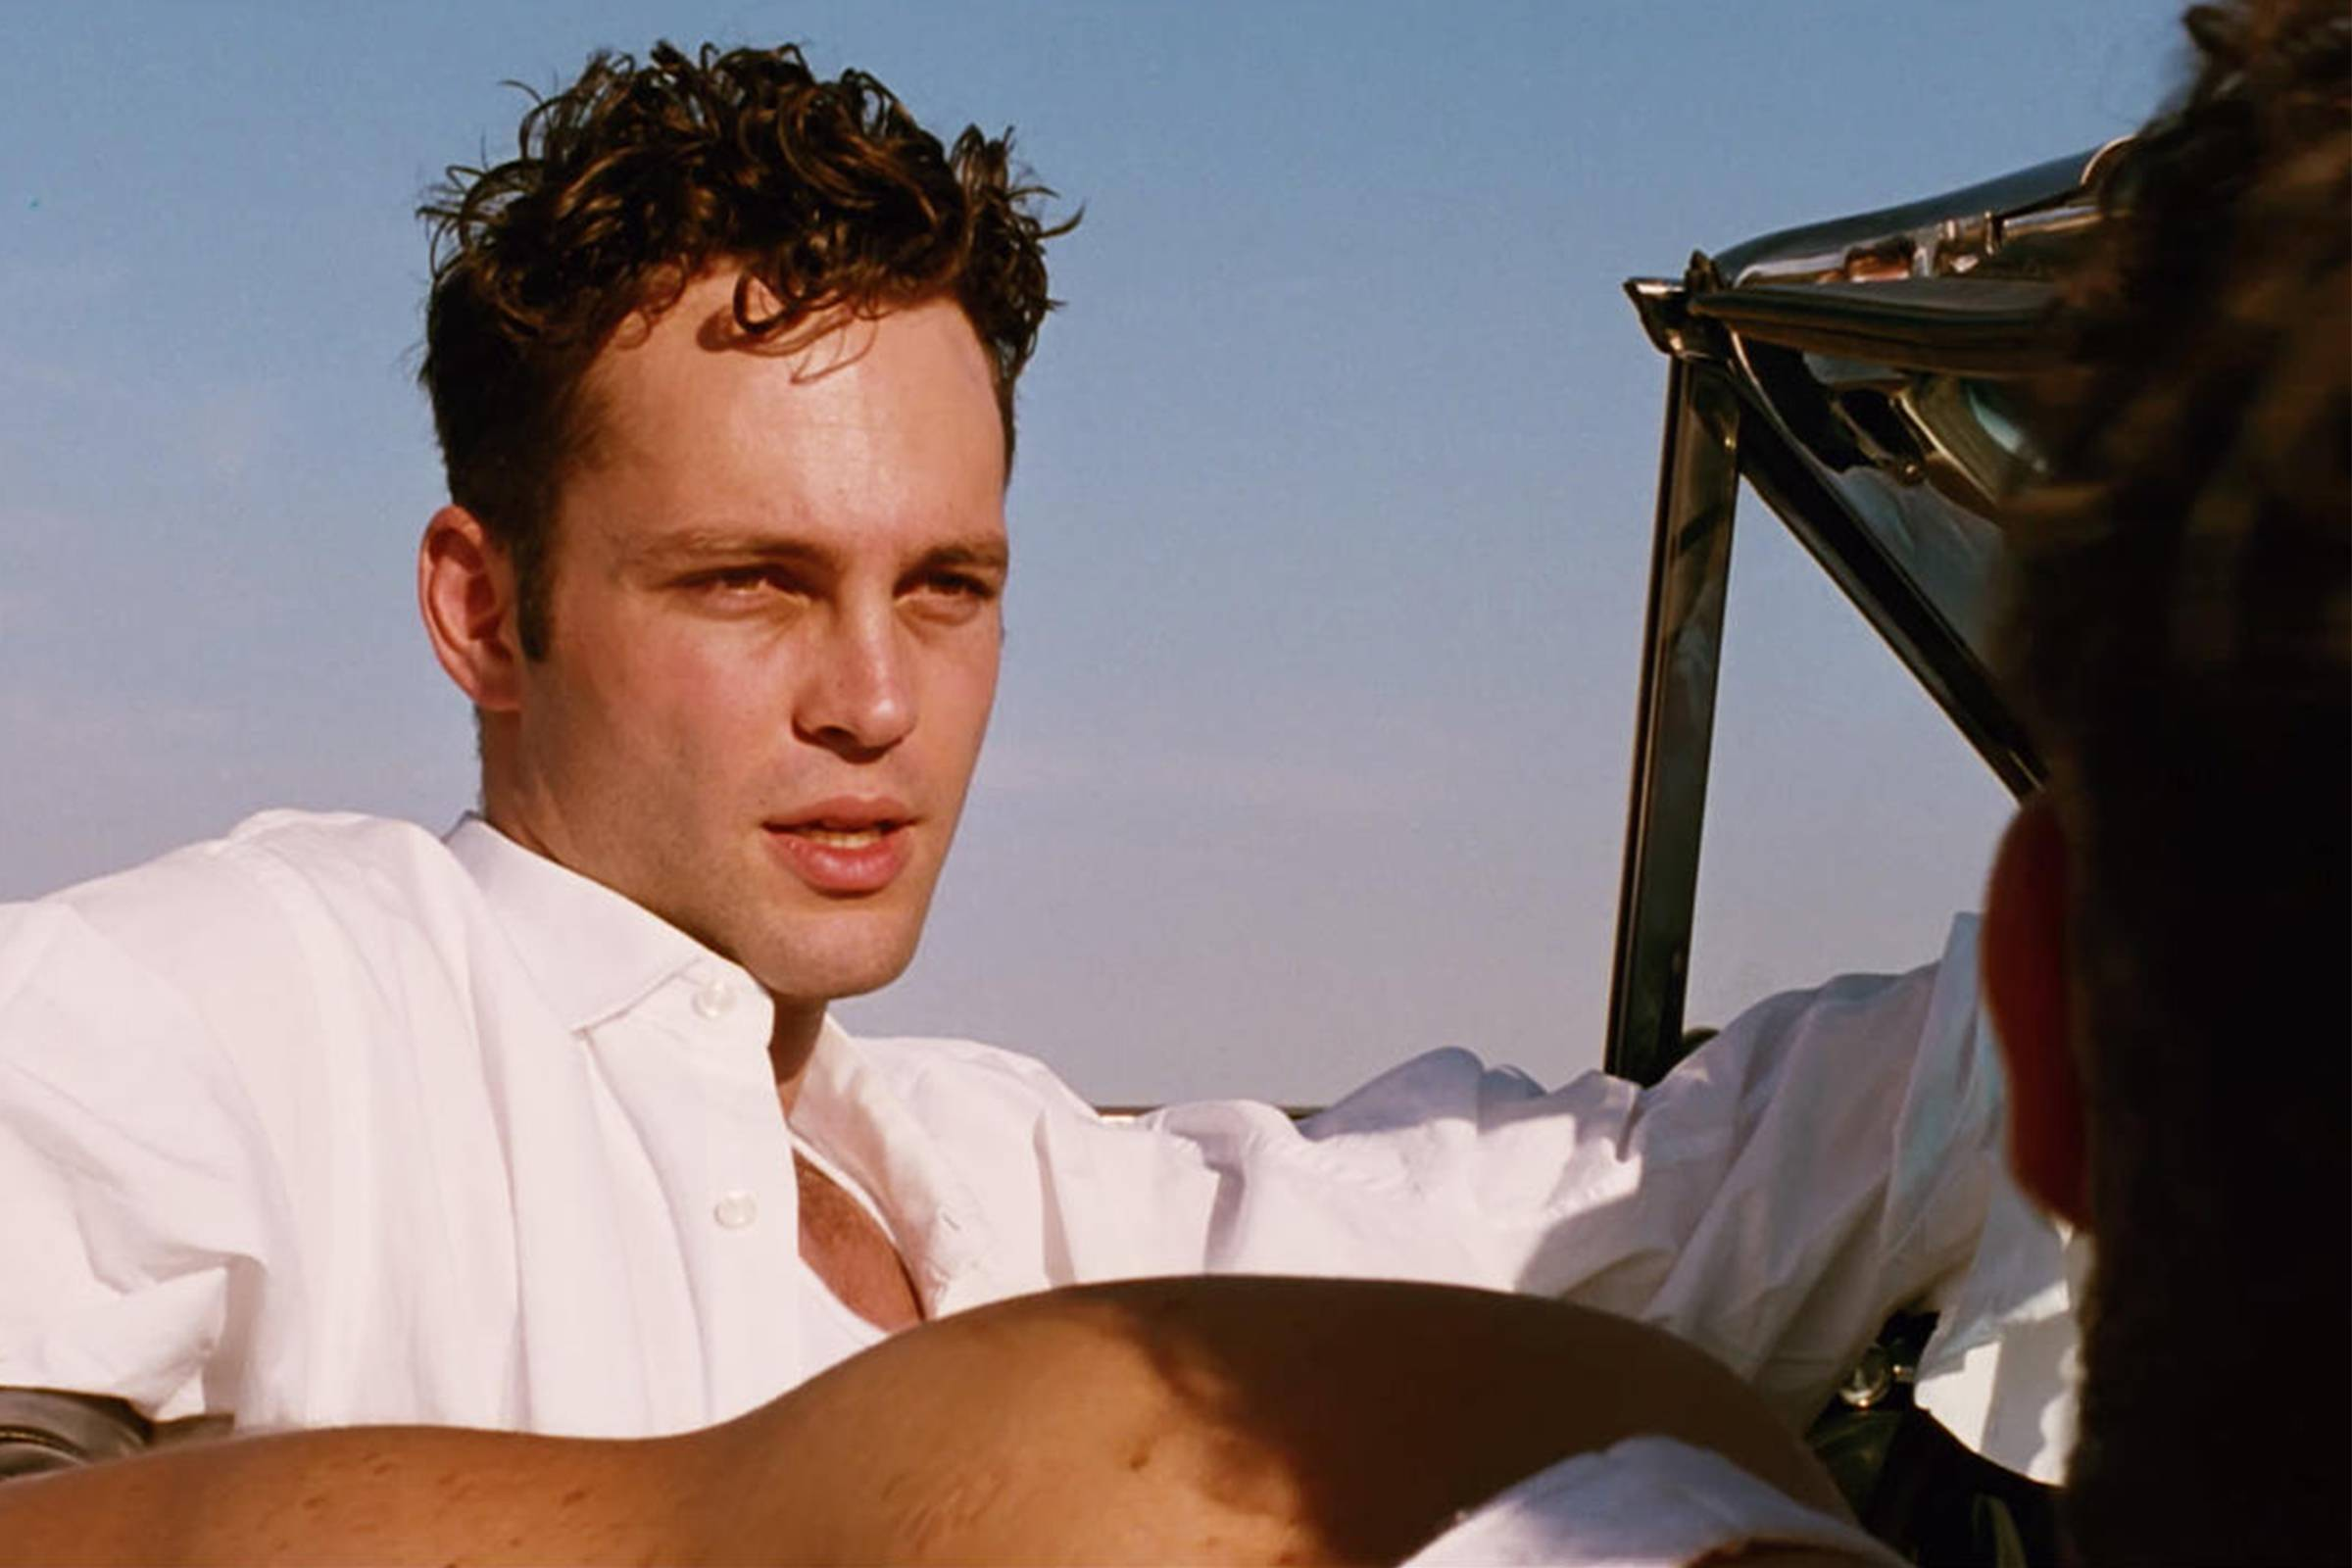 Trent (as played by Vince Vaughn)